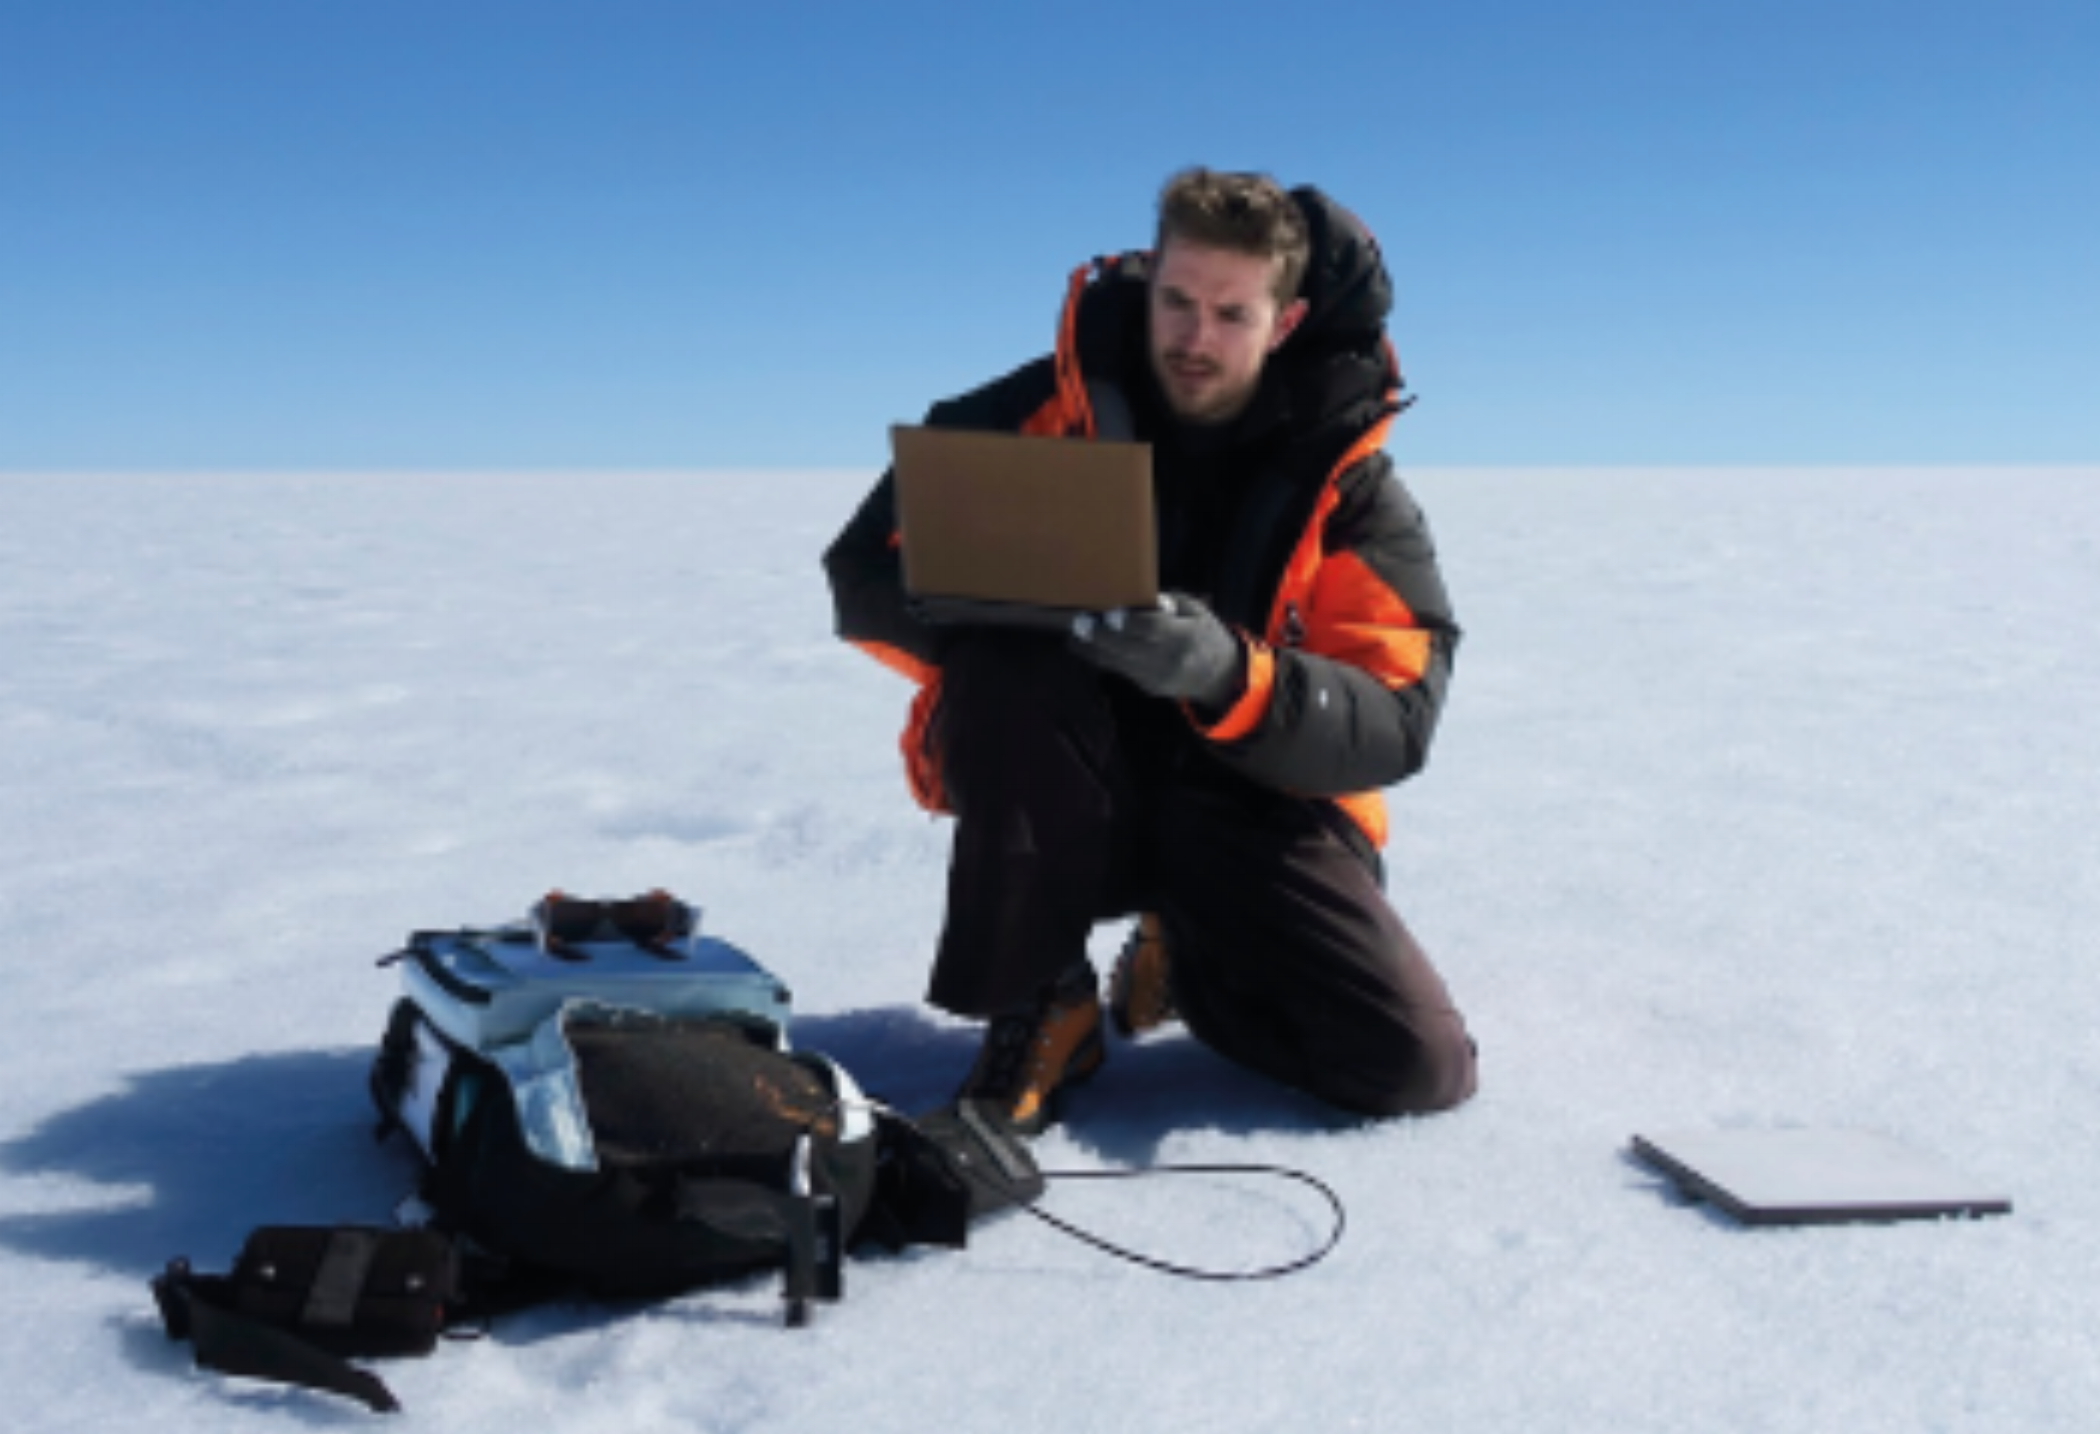 """Joseph Cook  - Climate Action  A glacial microbiologist, an explorer of the microscopic """"frozen rainforest"""" on the surface of the Greenland ice sheet, Cook has worked on the UK National Environmental Research Council's 'Black and Bloom' project, at the University of Sheffield to measure and model biological darkening of ice."""